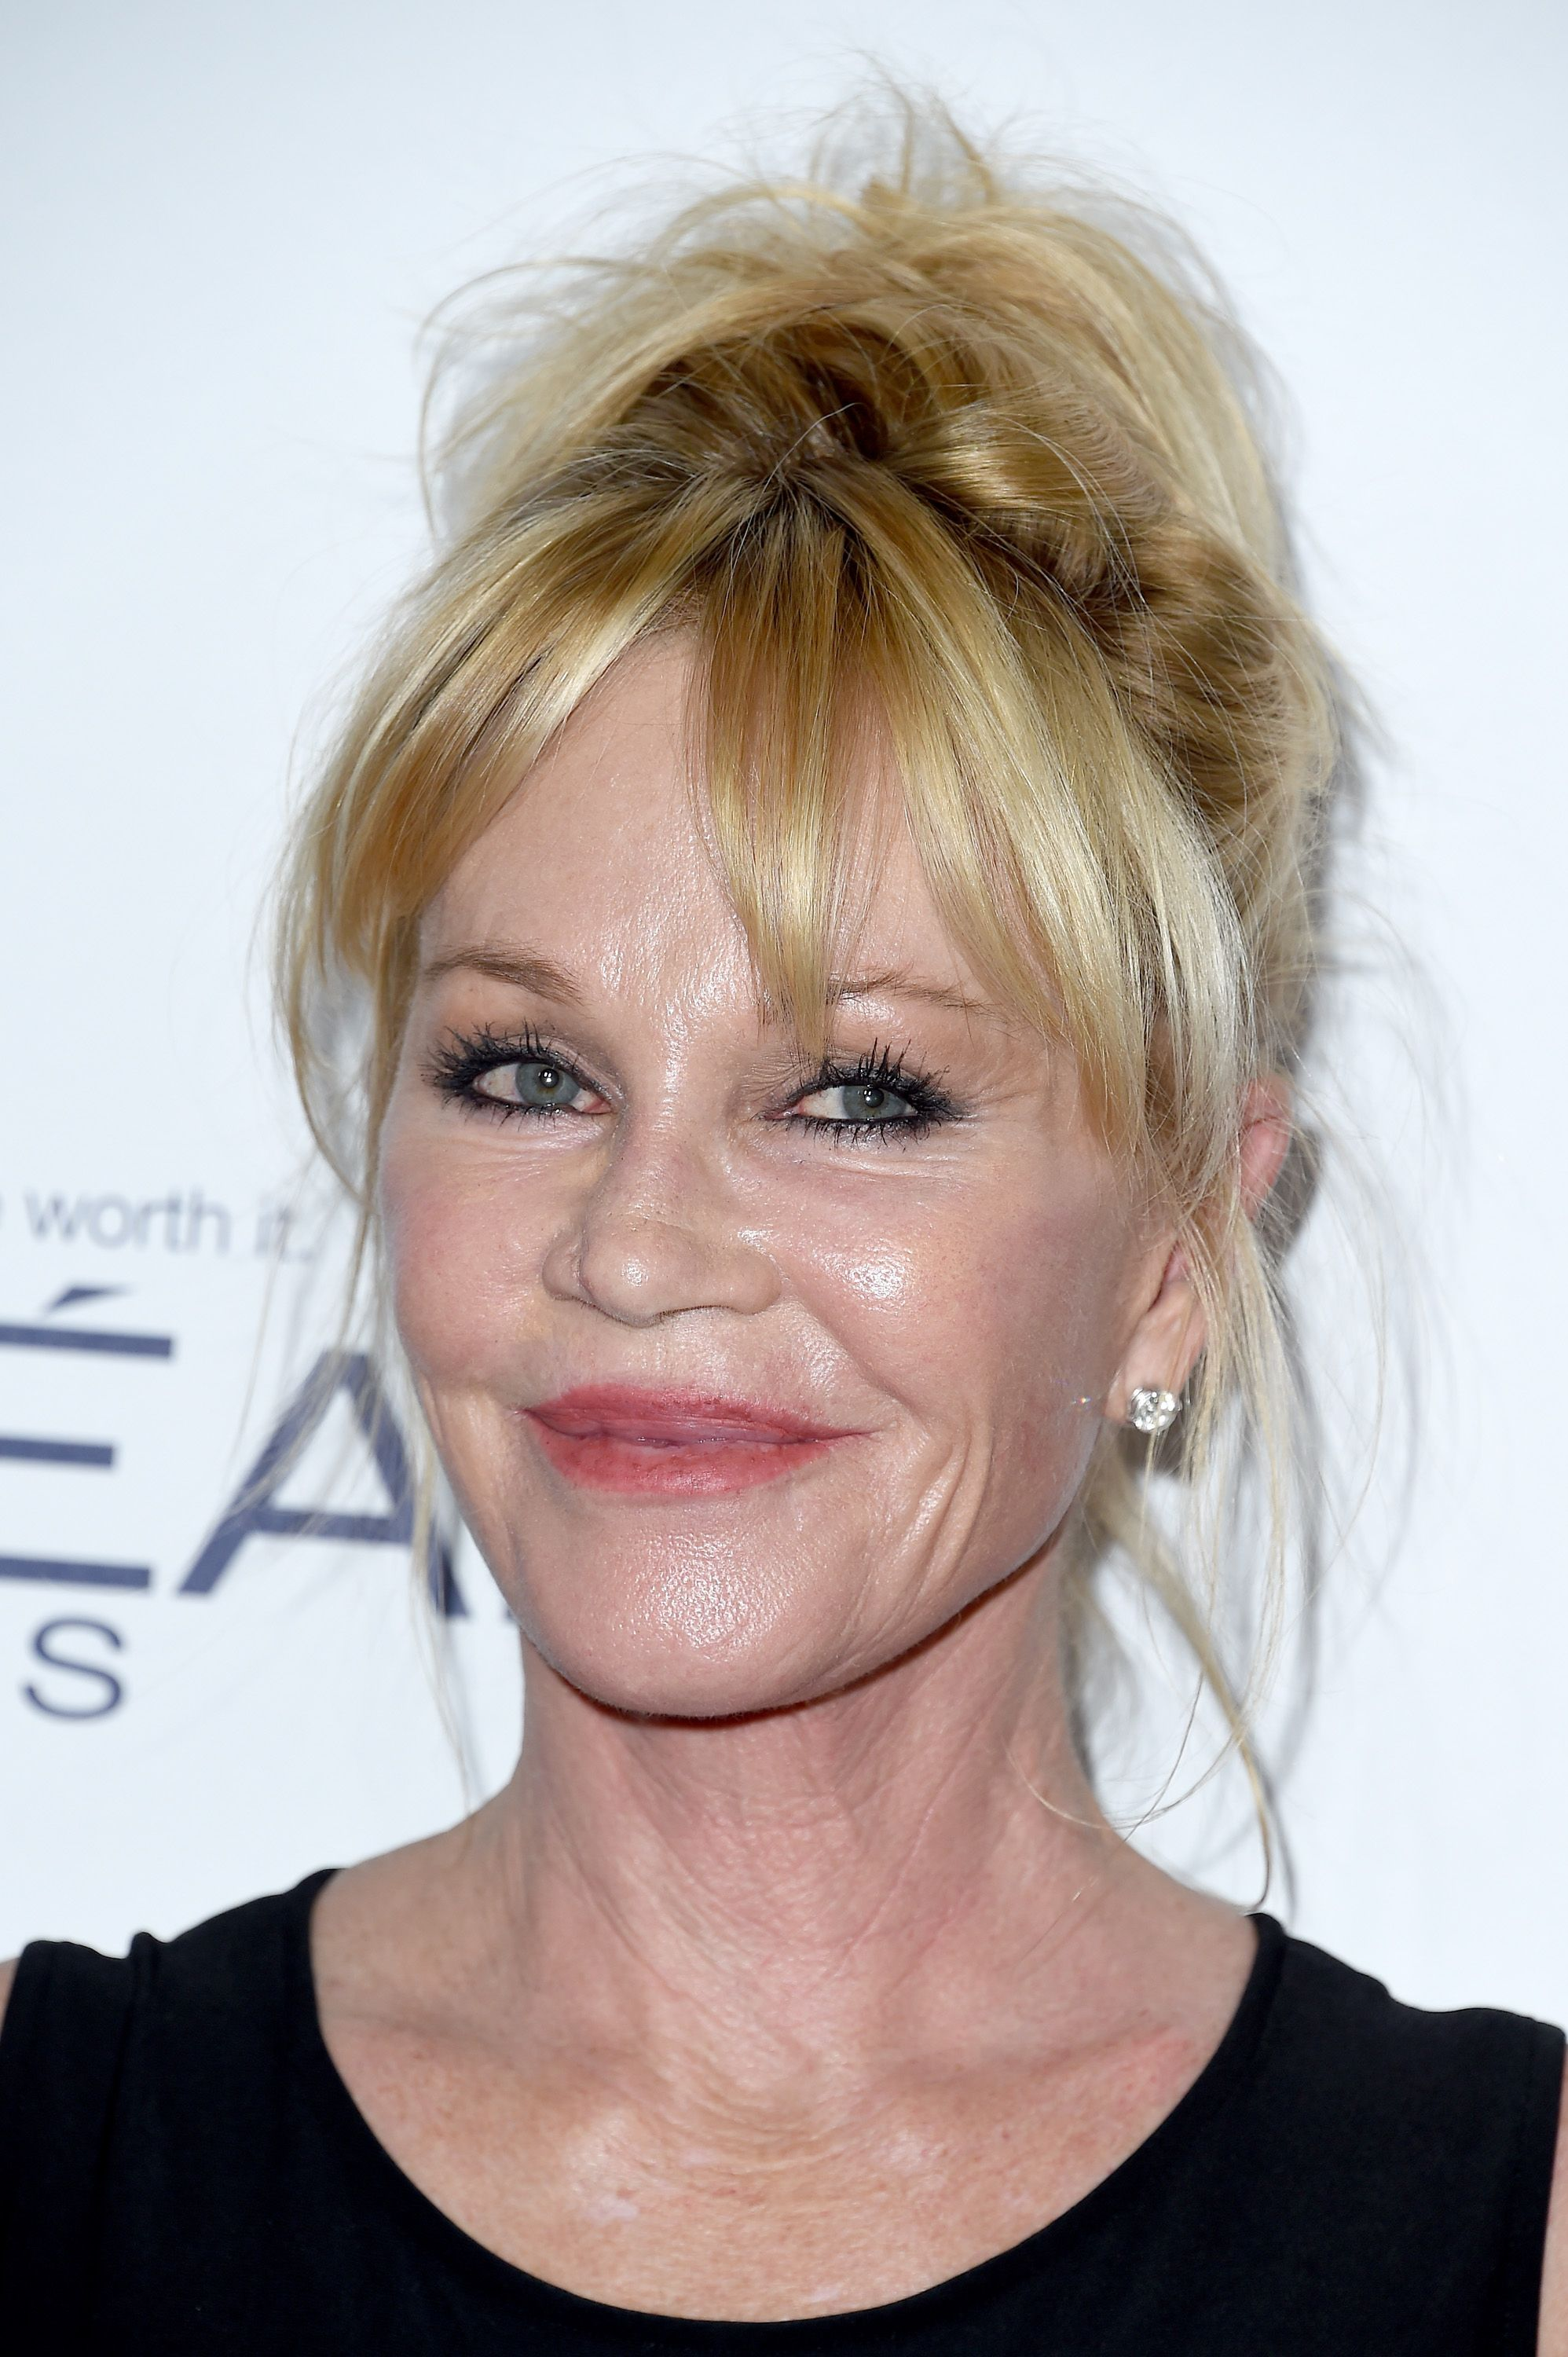 Selfie Melanie Griffith naked (37 foto and video), Ass, Sideboobs, Instagram, cleavage 2018